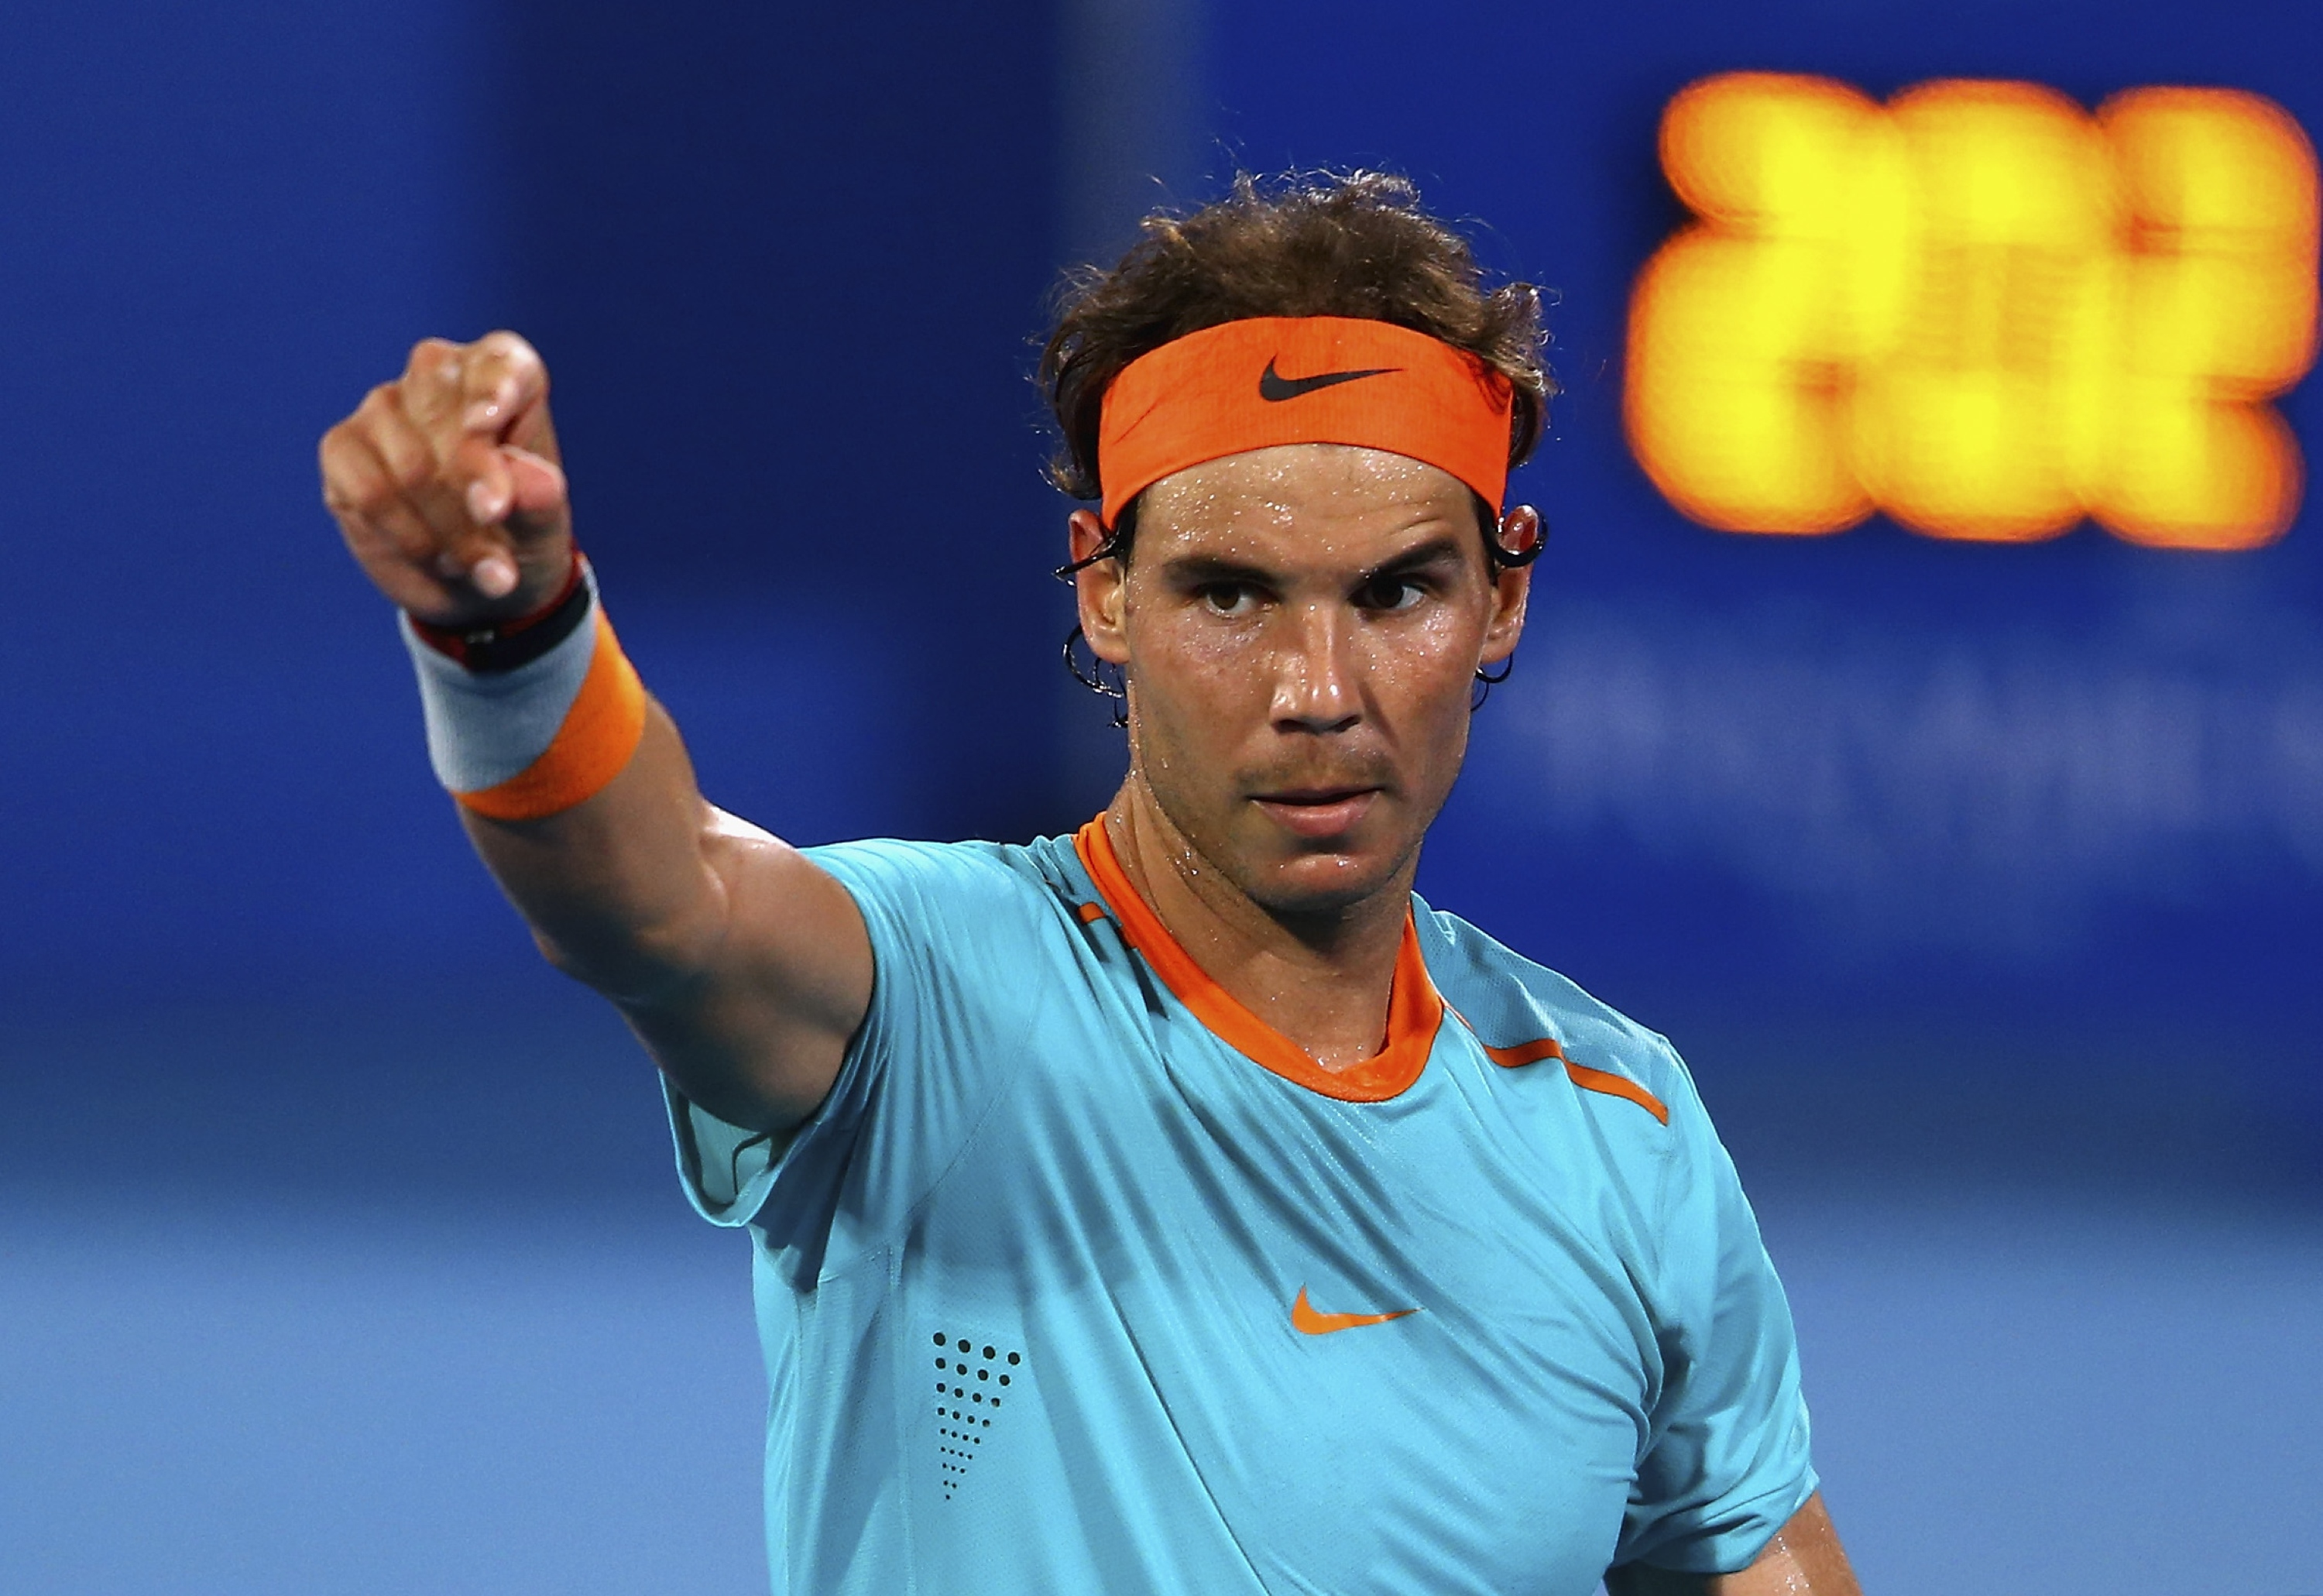 Rafael Nadal Wallpapers Pictures Images